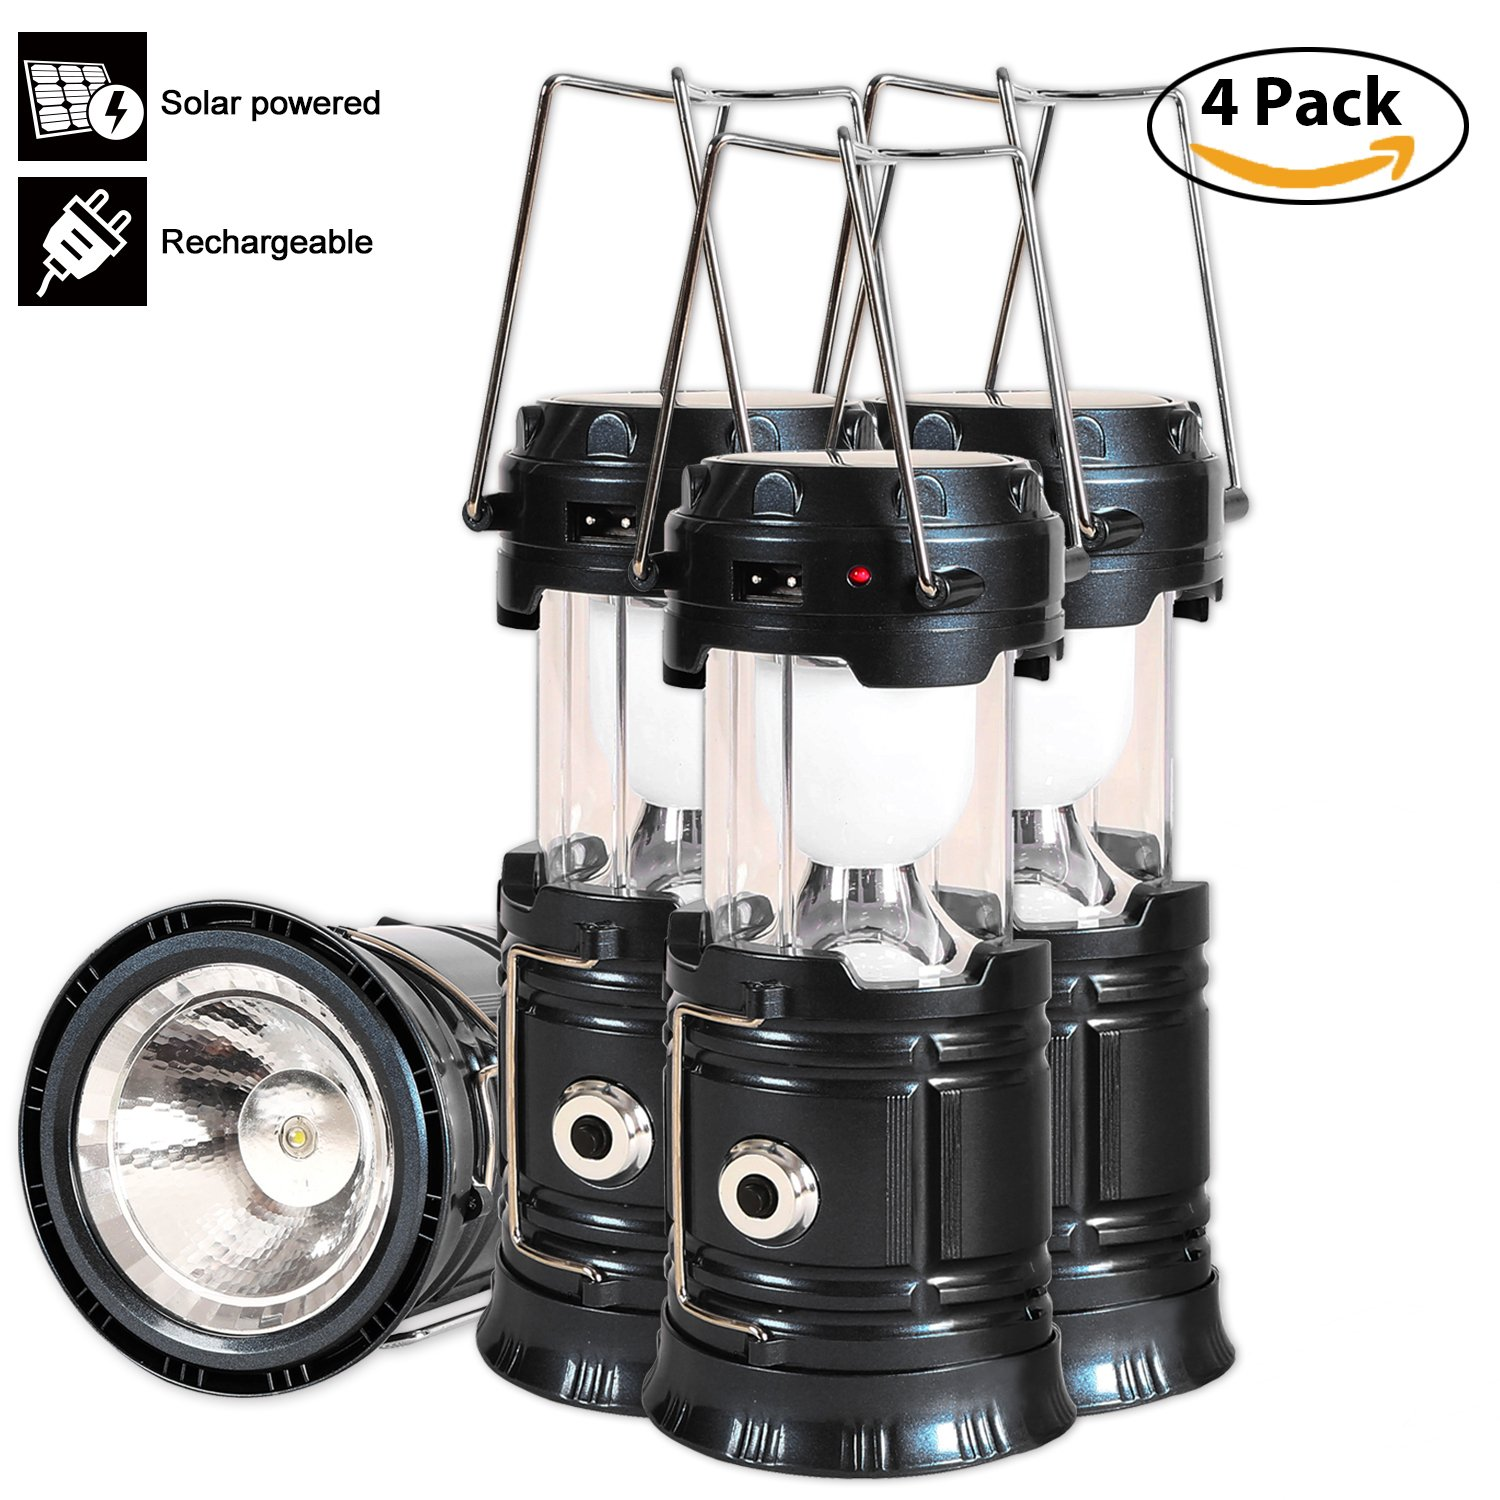 Solar Led Camping Lantern, 4 Pack Rechargeable Lantern Flashlight, Collapsible